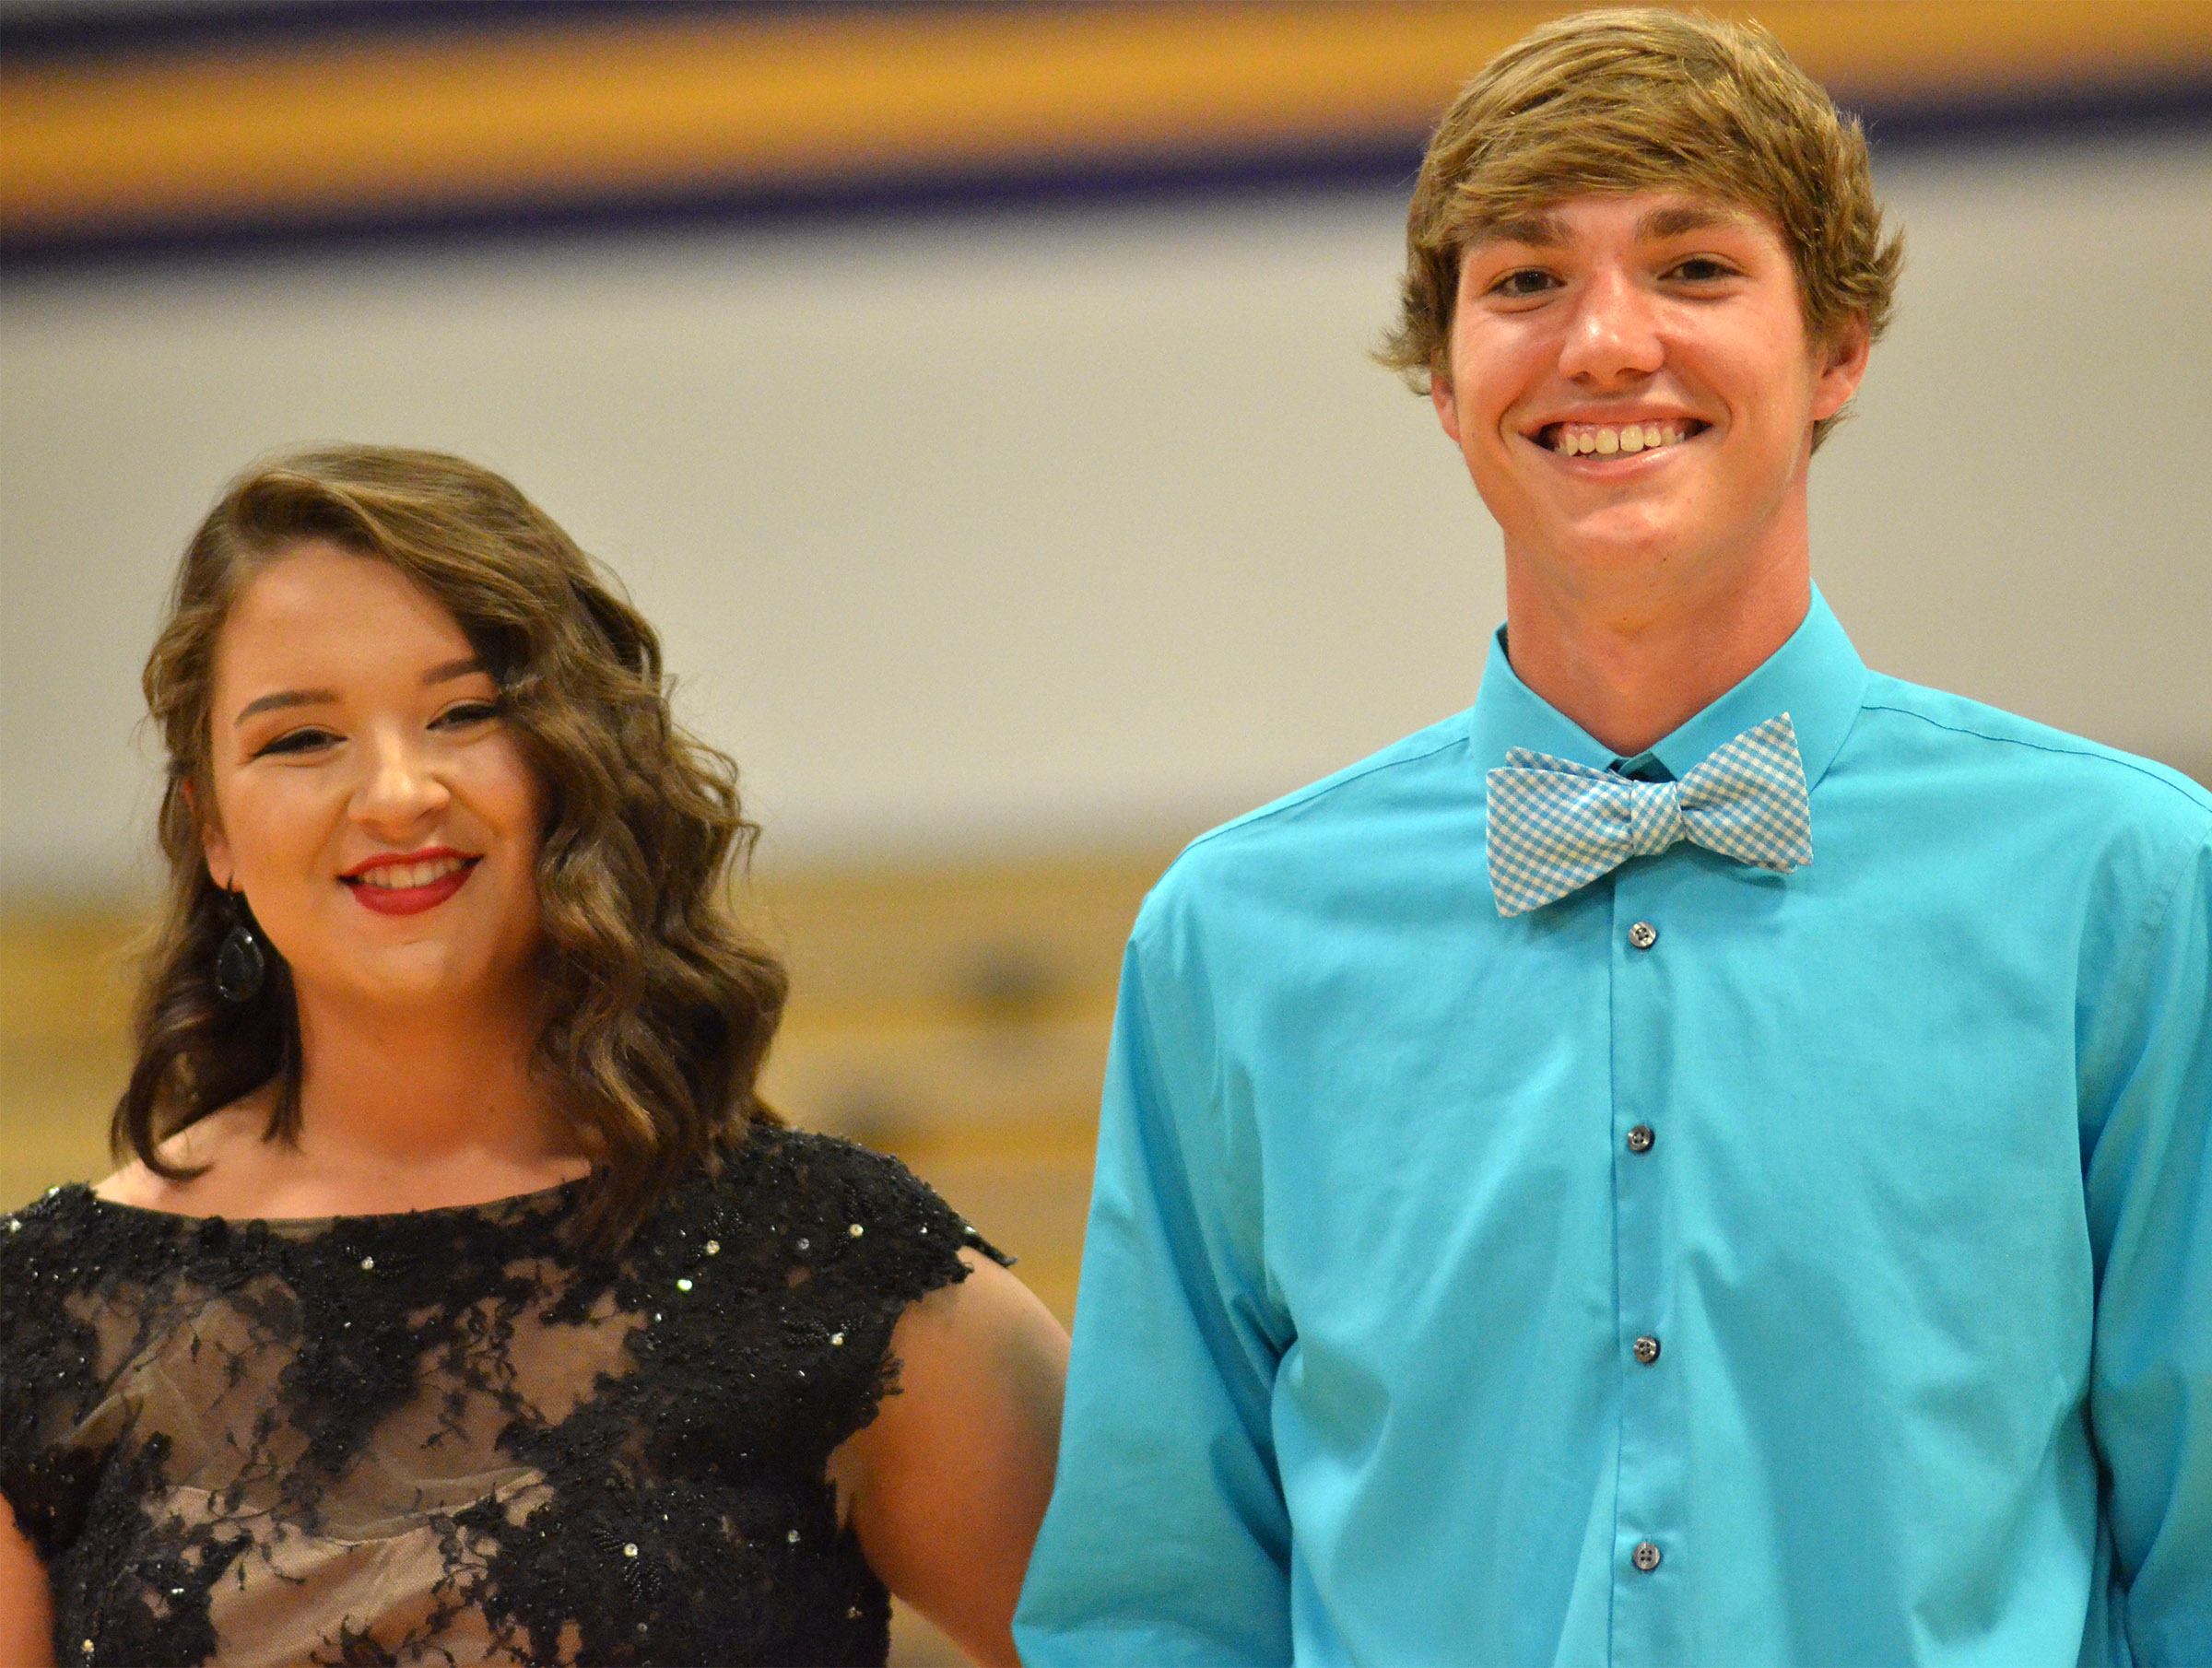 Kailey Morris, at left, and Zack Bottoms smile as they walk to their seats.